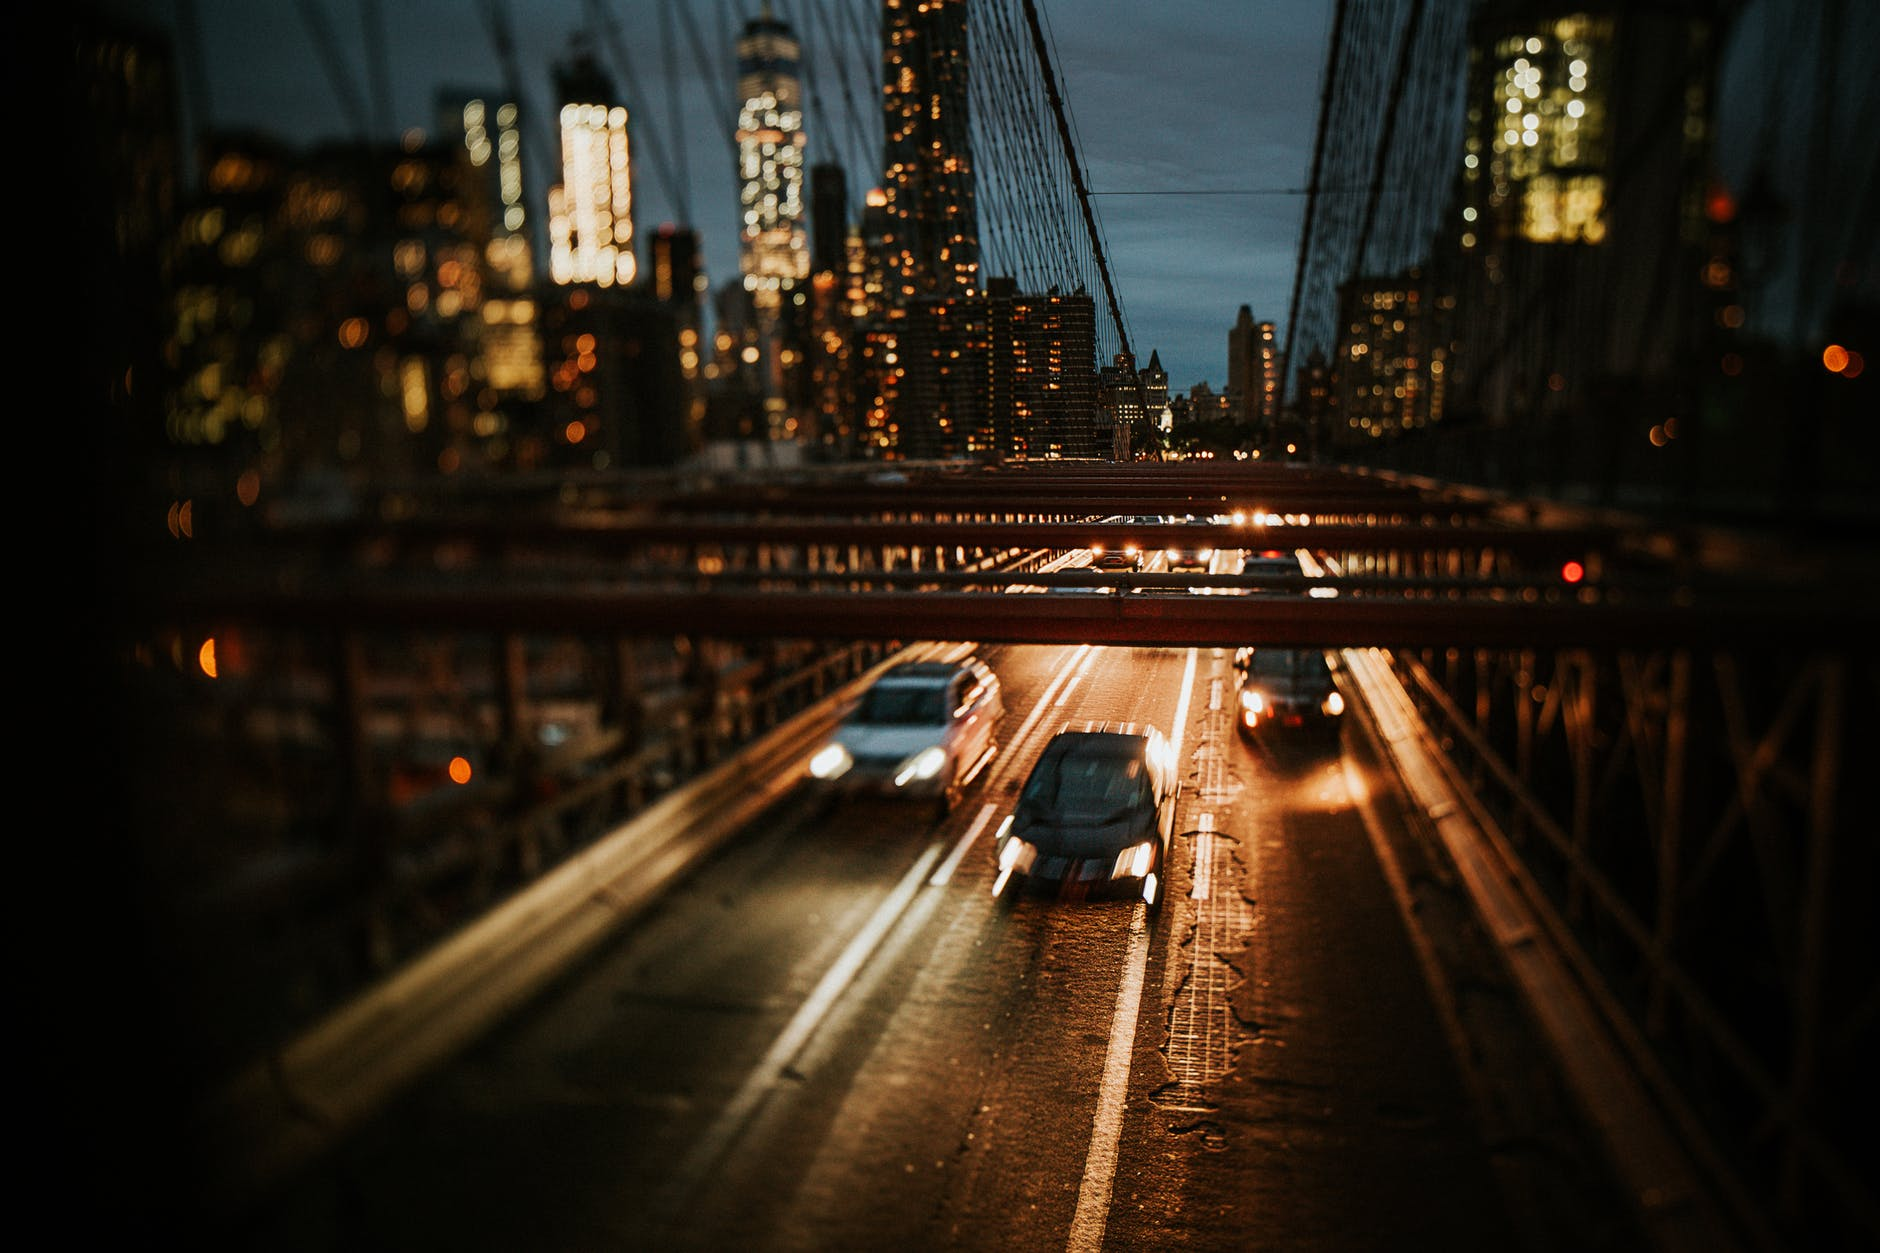 bridge with cars traveling